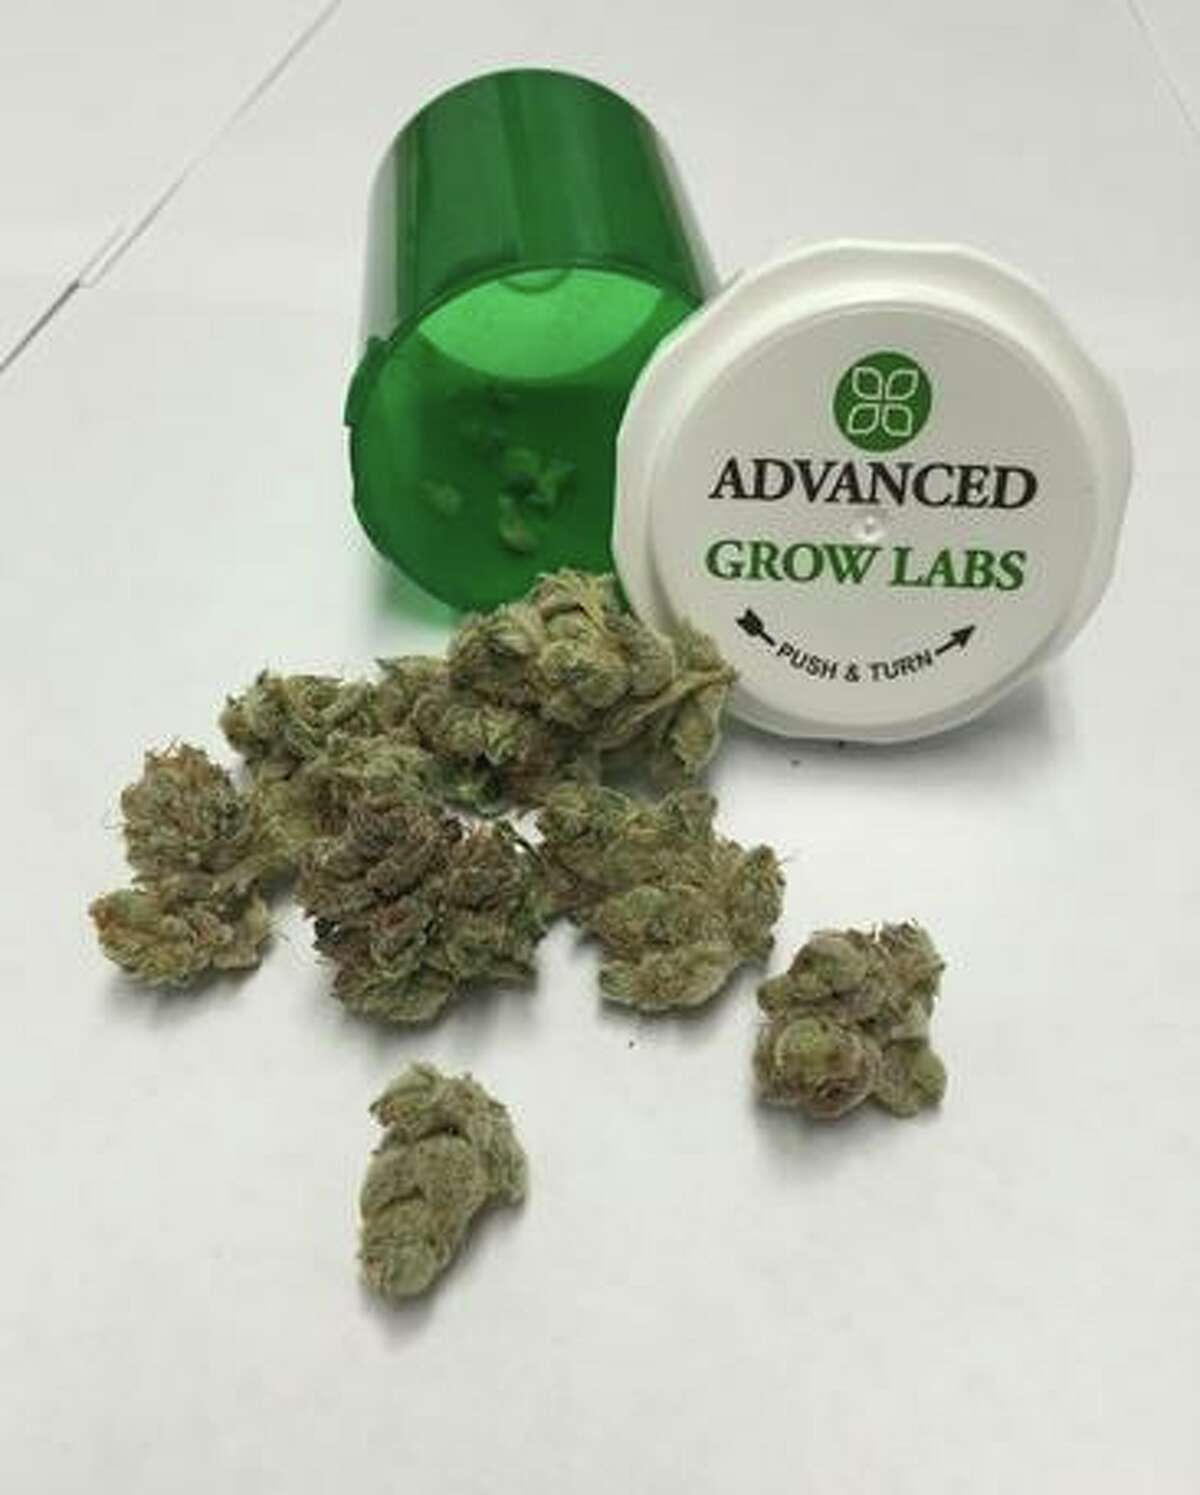 Dried marijuana flowers is one of the products sold at Compassionate Care of Connecticut dispensary, in Bethel, Conn.